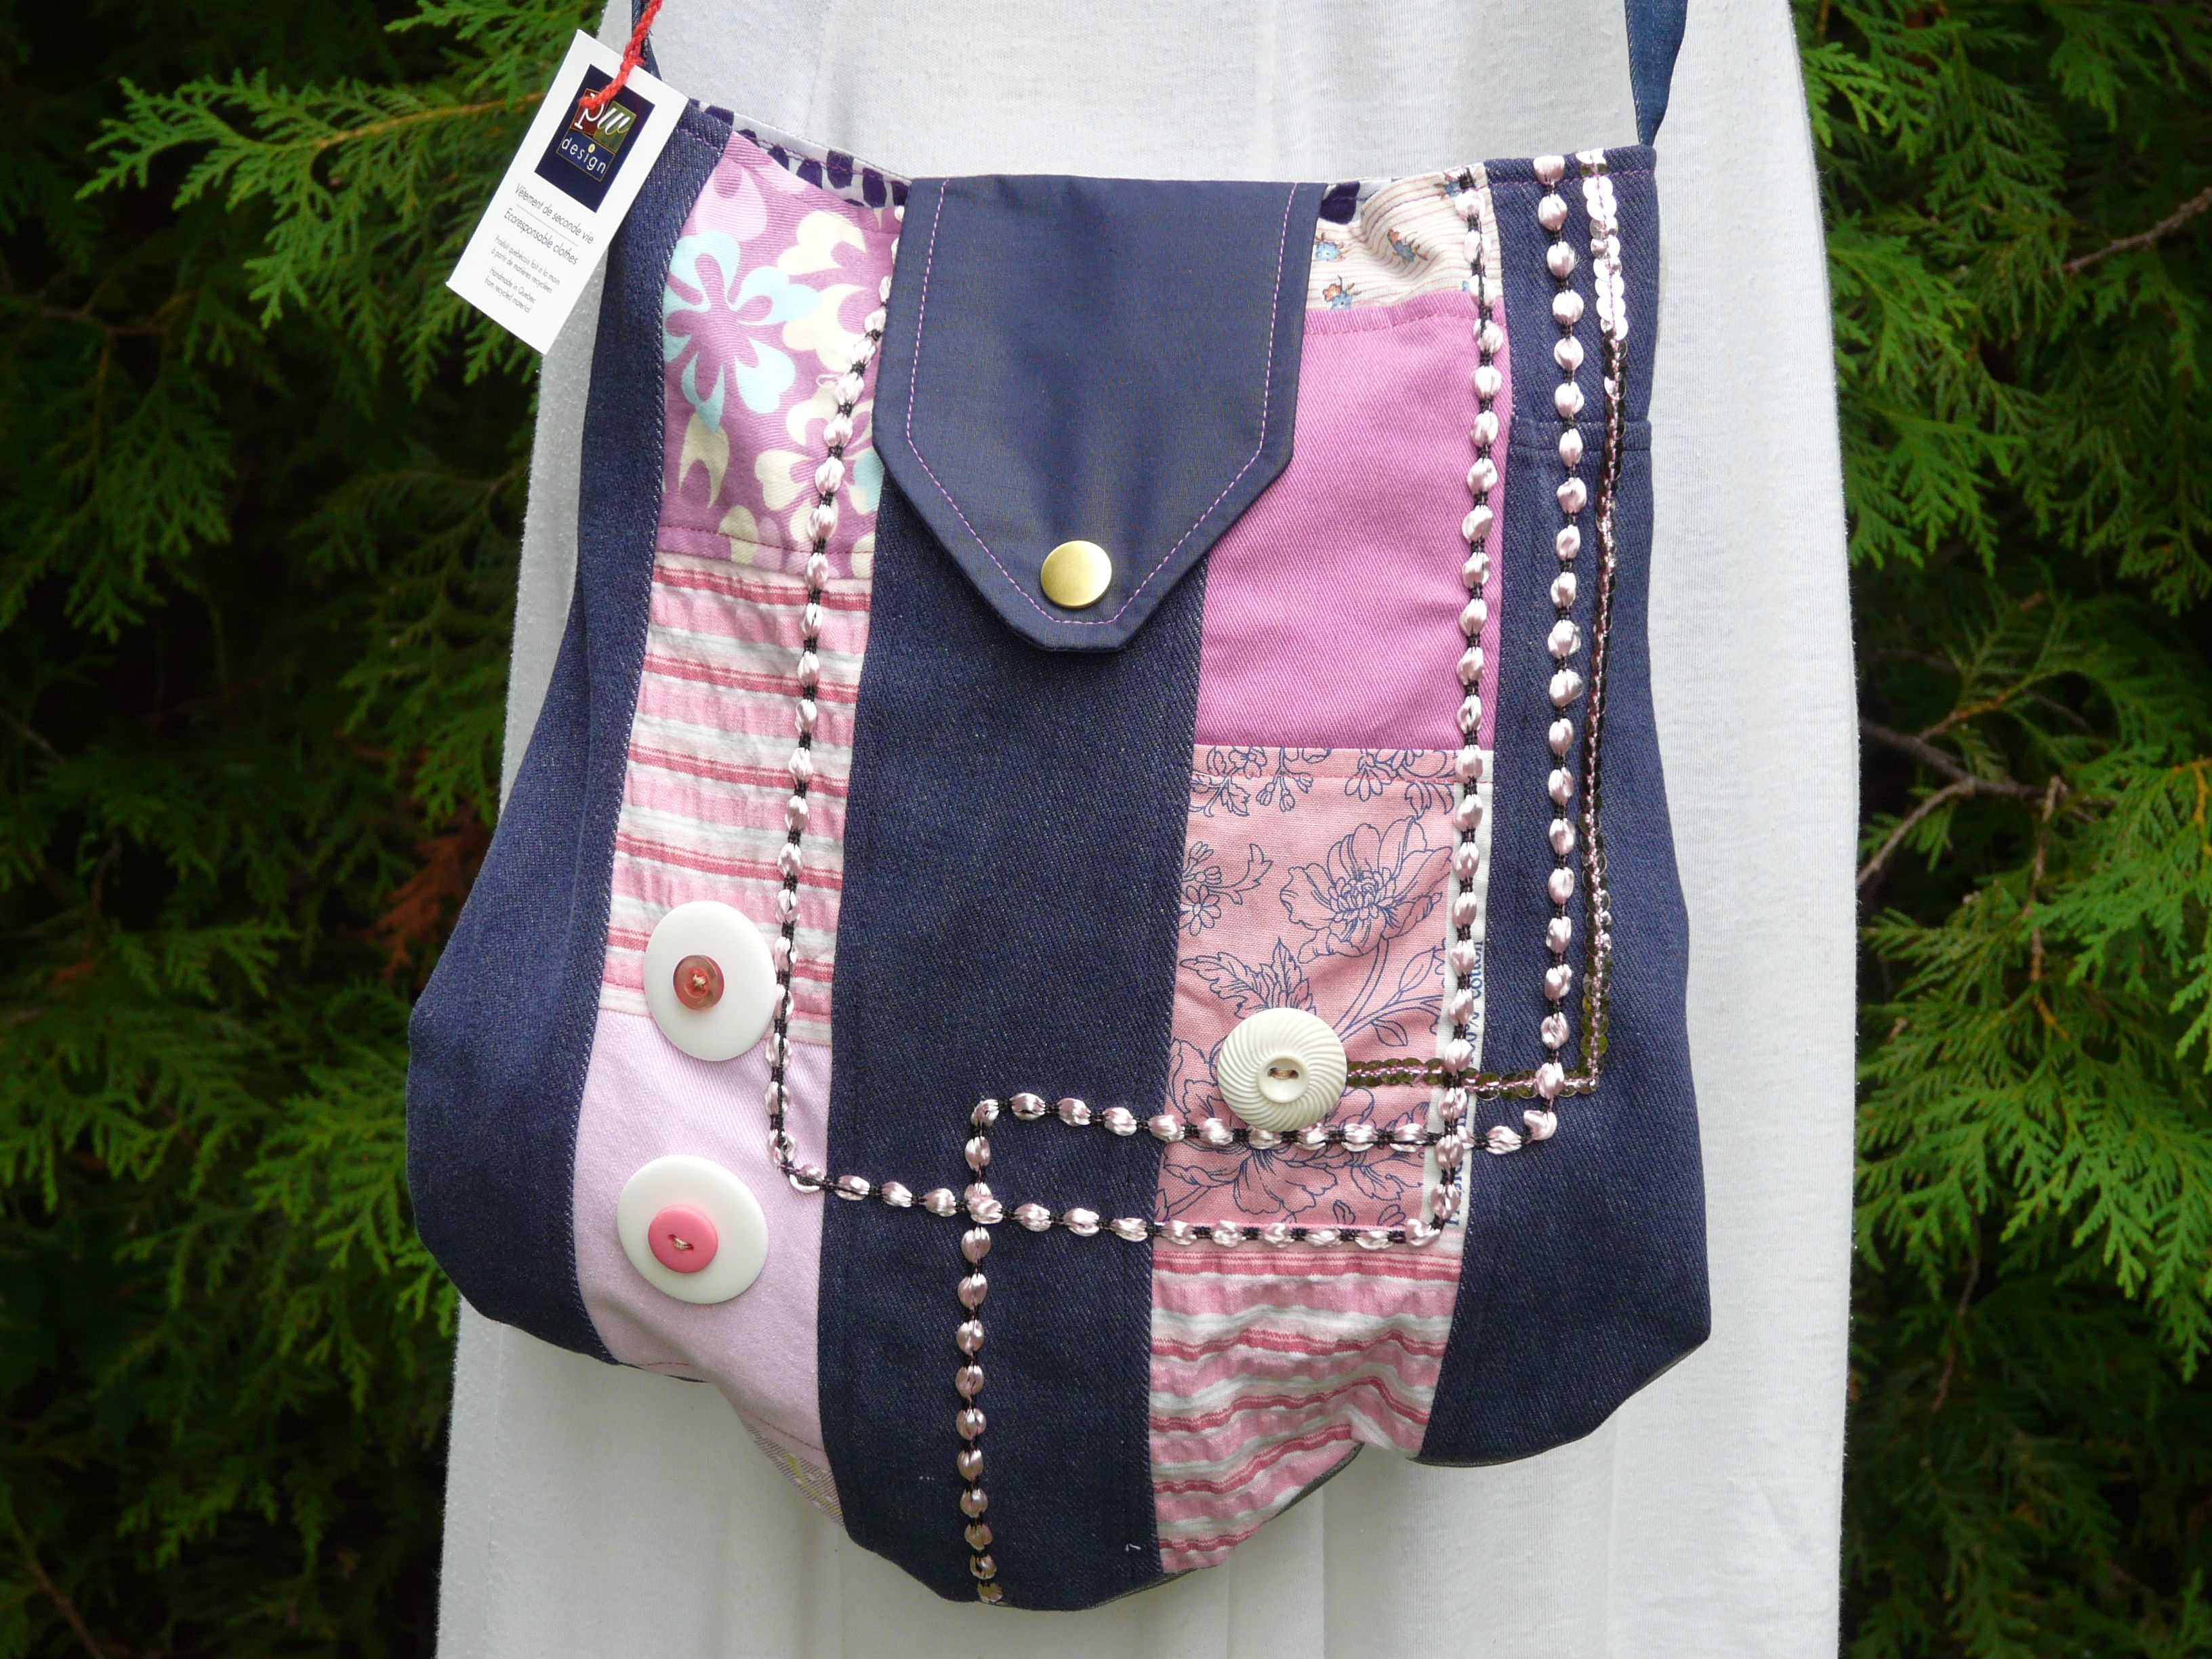 Handbag Made From Recycled Material Patchwork Design Company